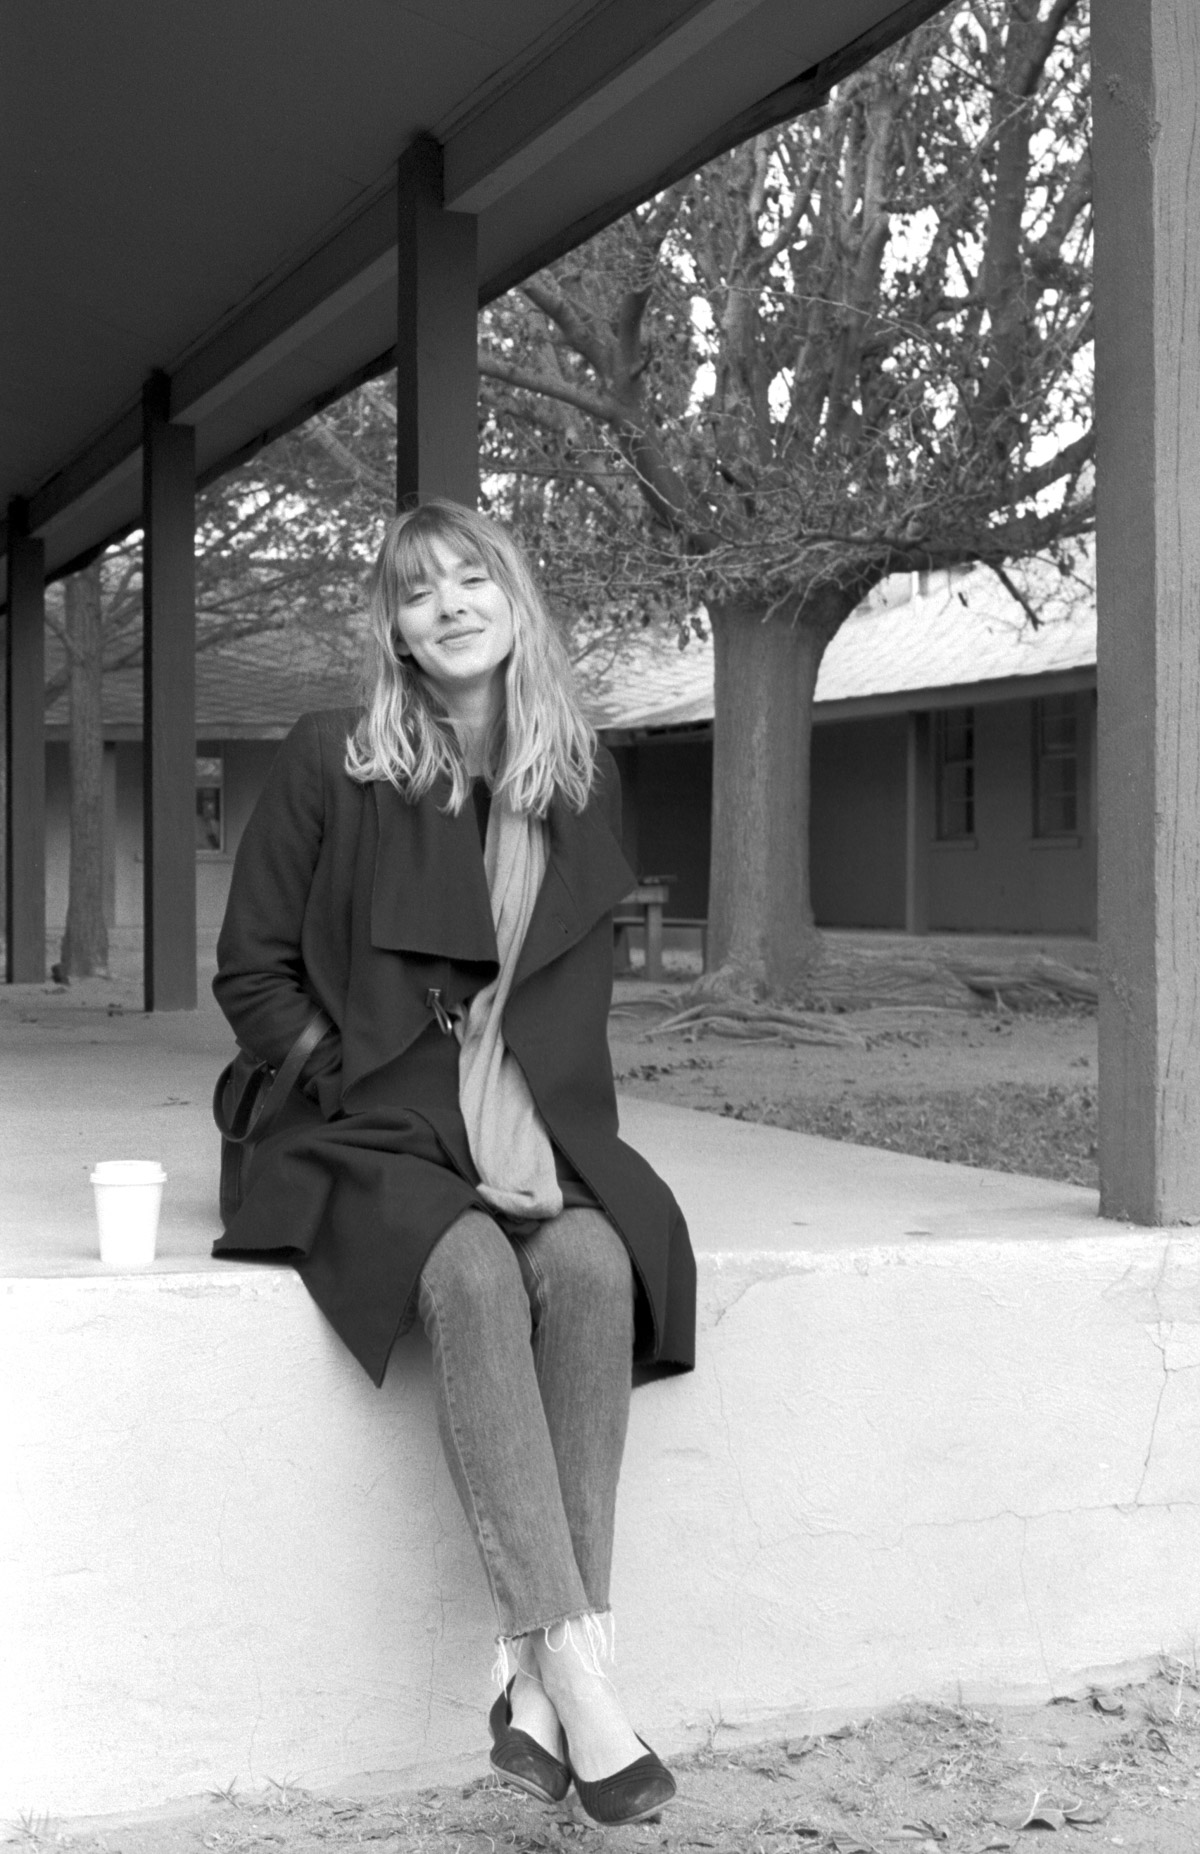 PhD candidate Willa Granger sits on a ledge, smiling at the camera. Shot in black and white.